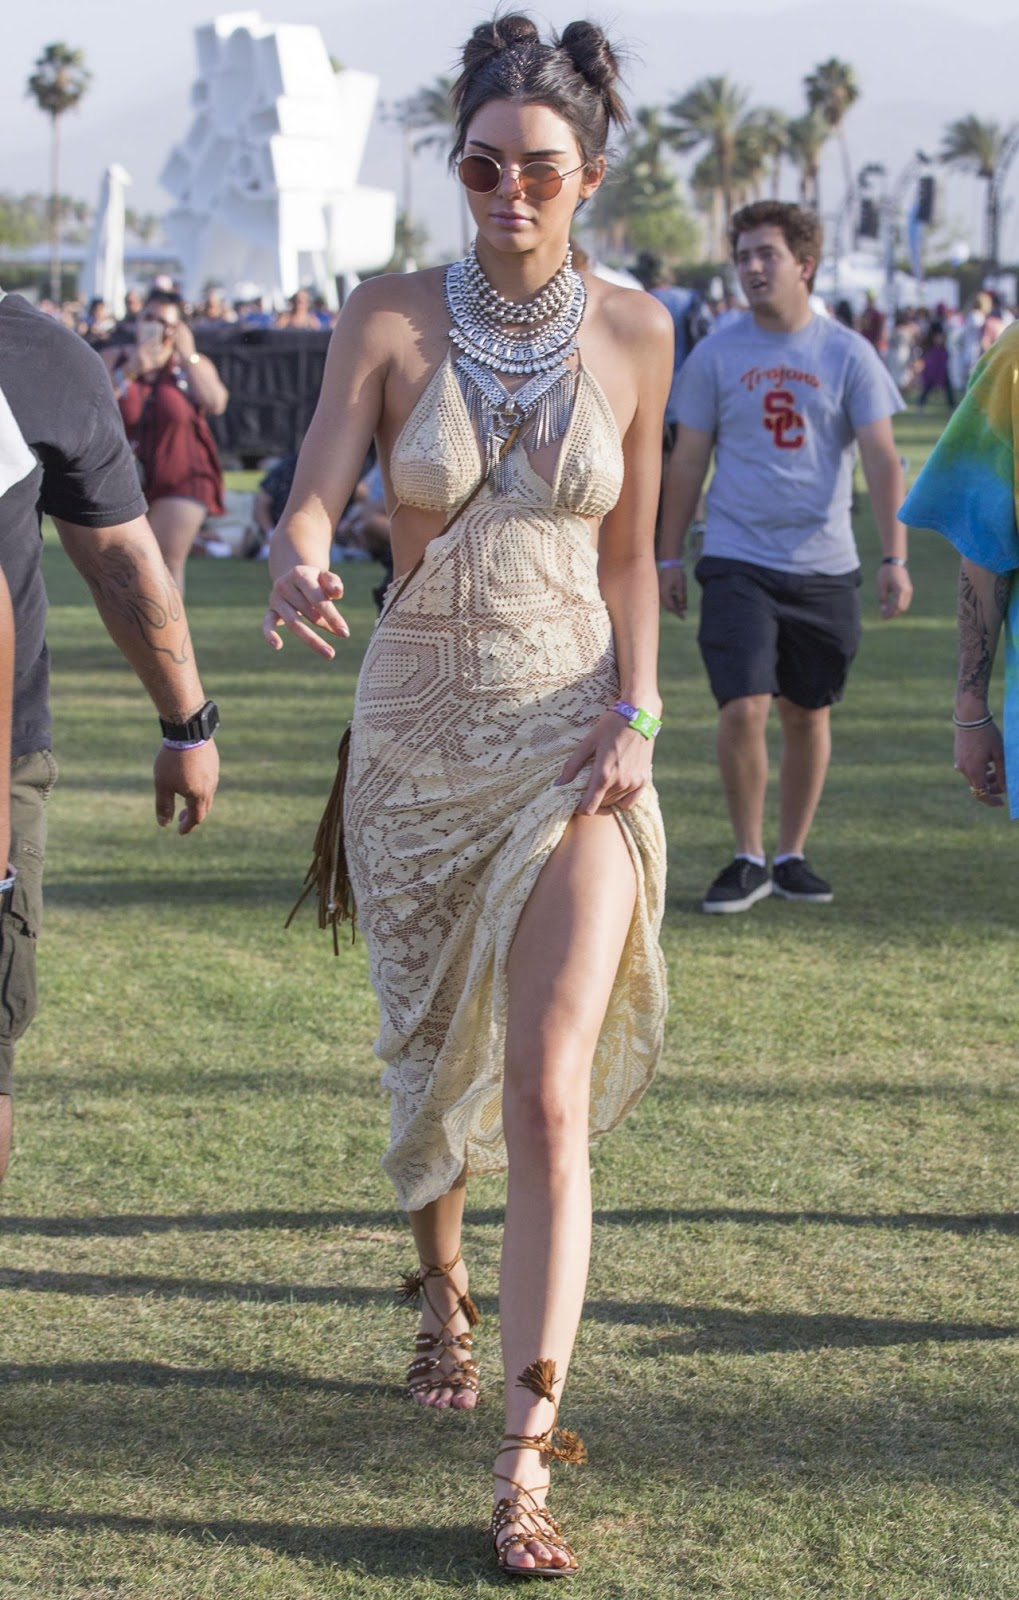 Kendall wears raver bun hairdo and lace dress for Coachella 2016